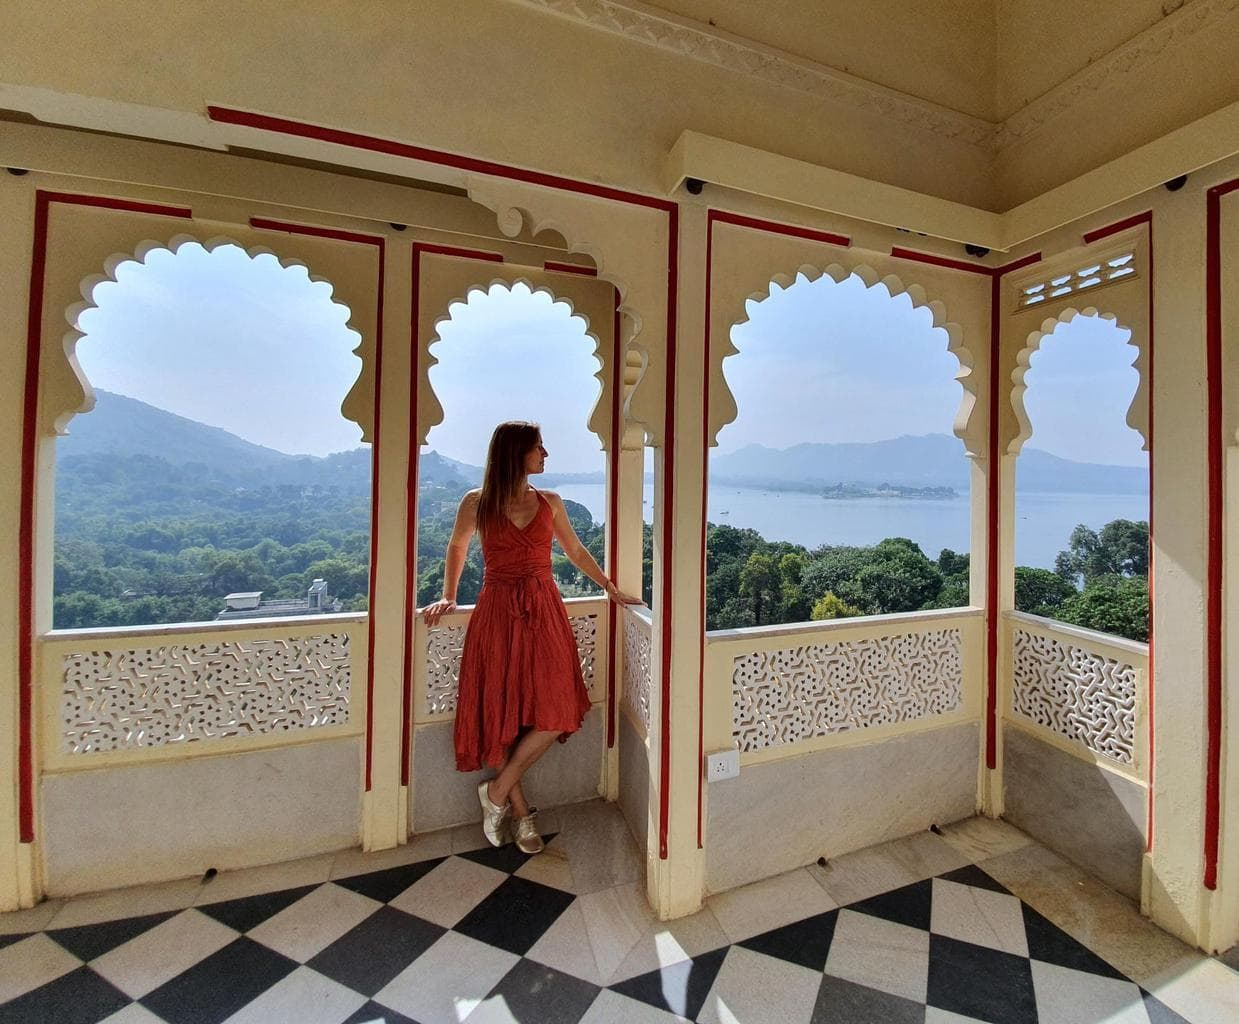 Balconies with lake views at Shiv Niwas Palace